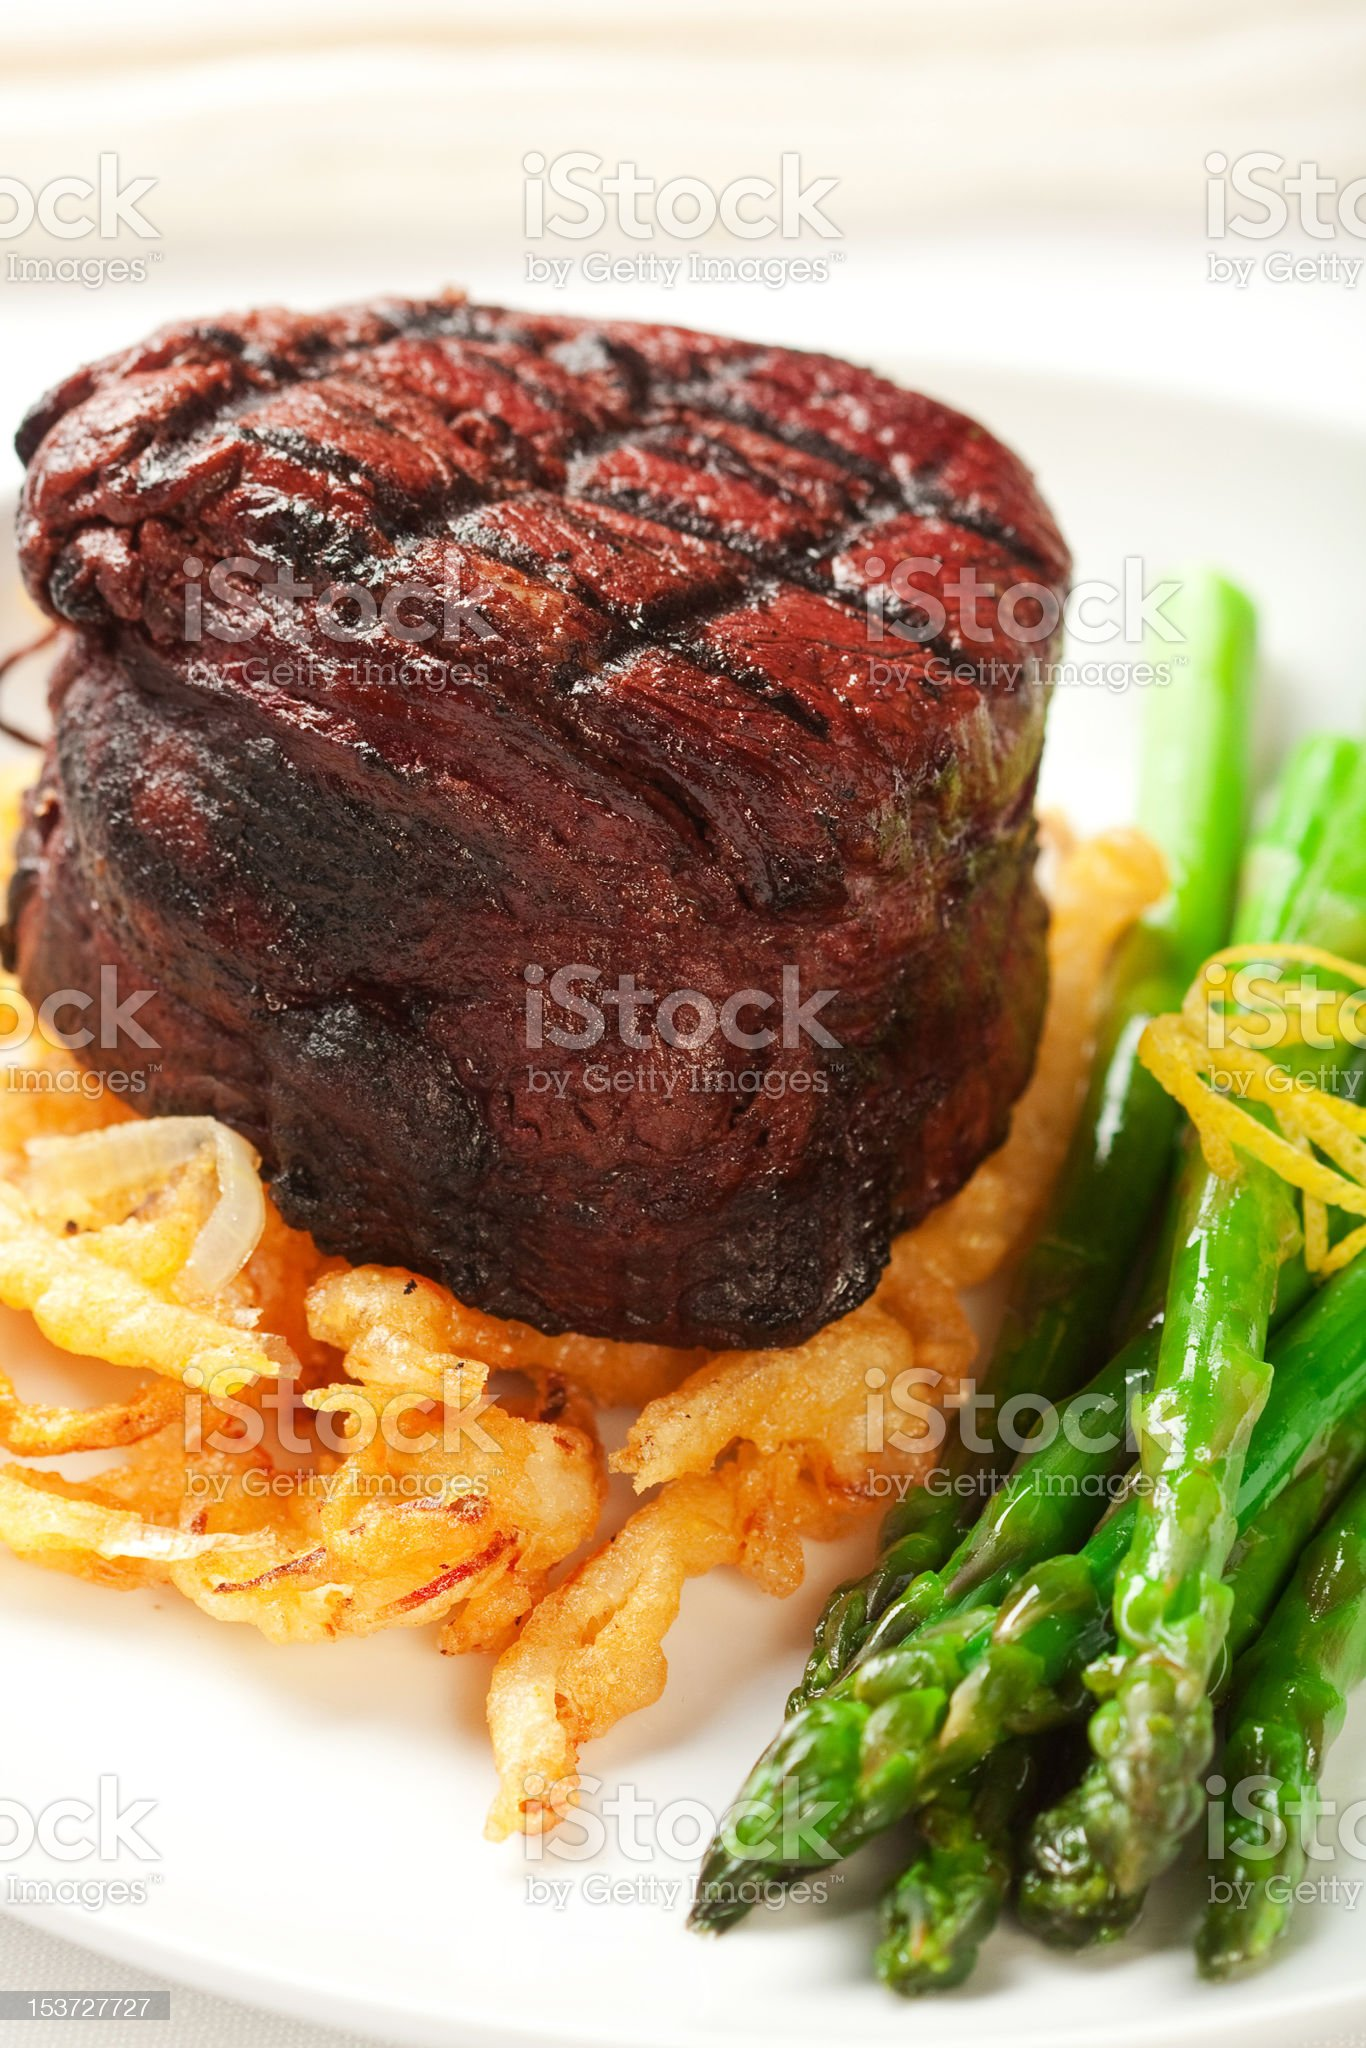 Filet Mignon royalty-free stock photo